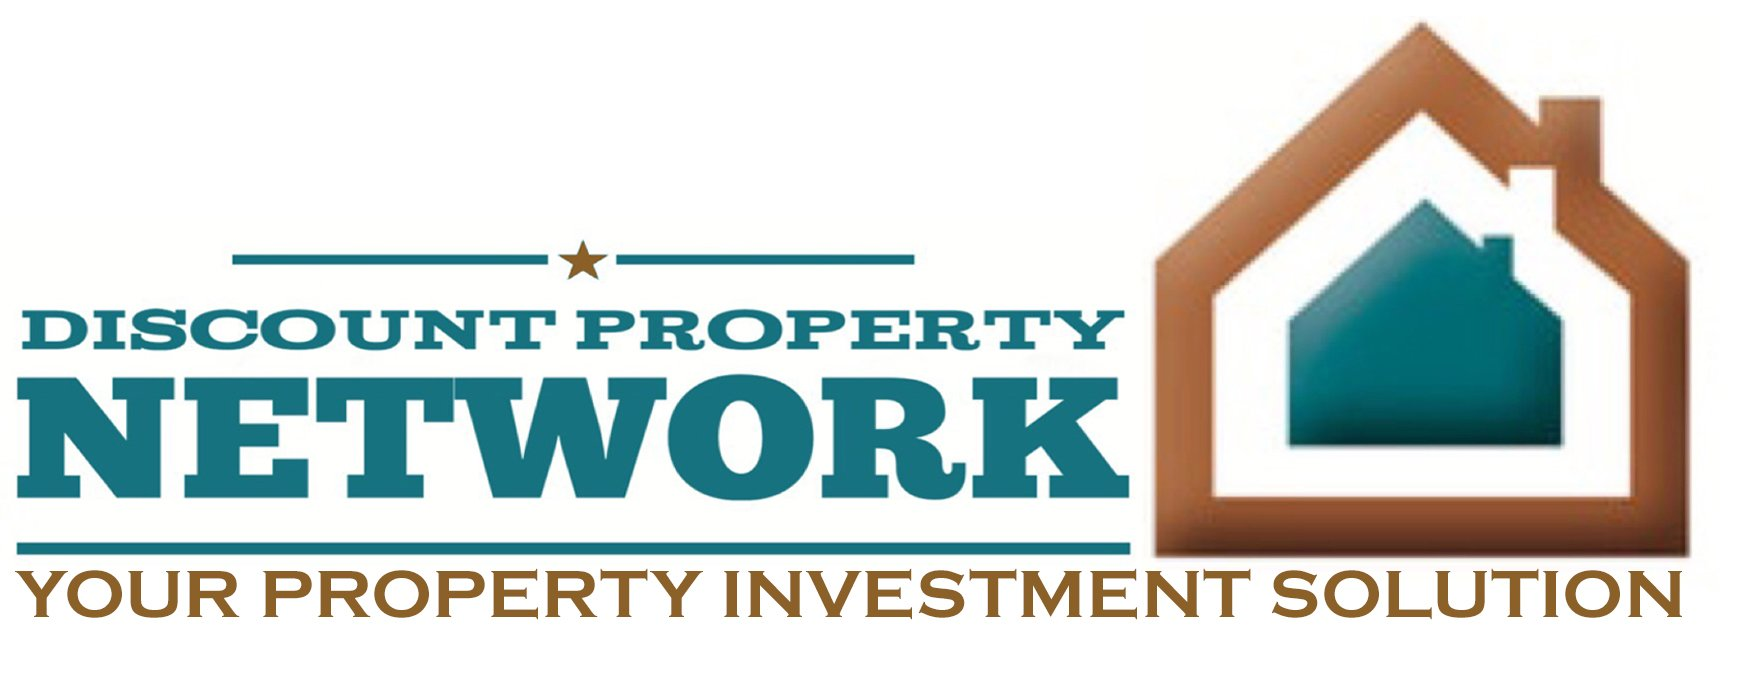 Discount Property Network logo